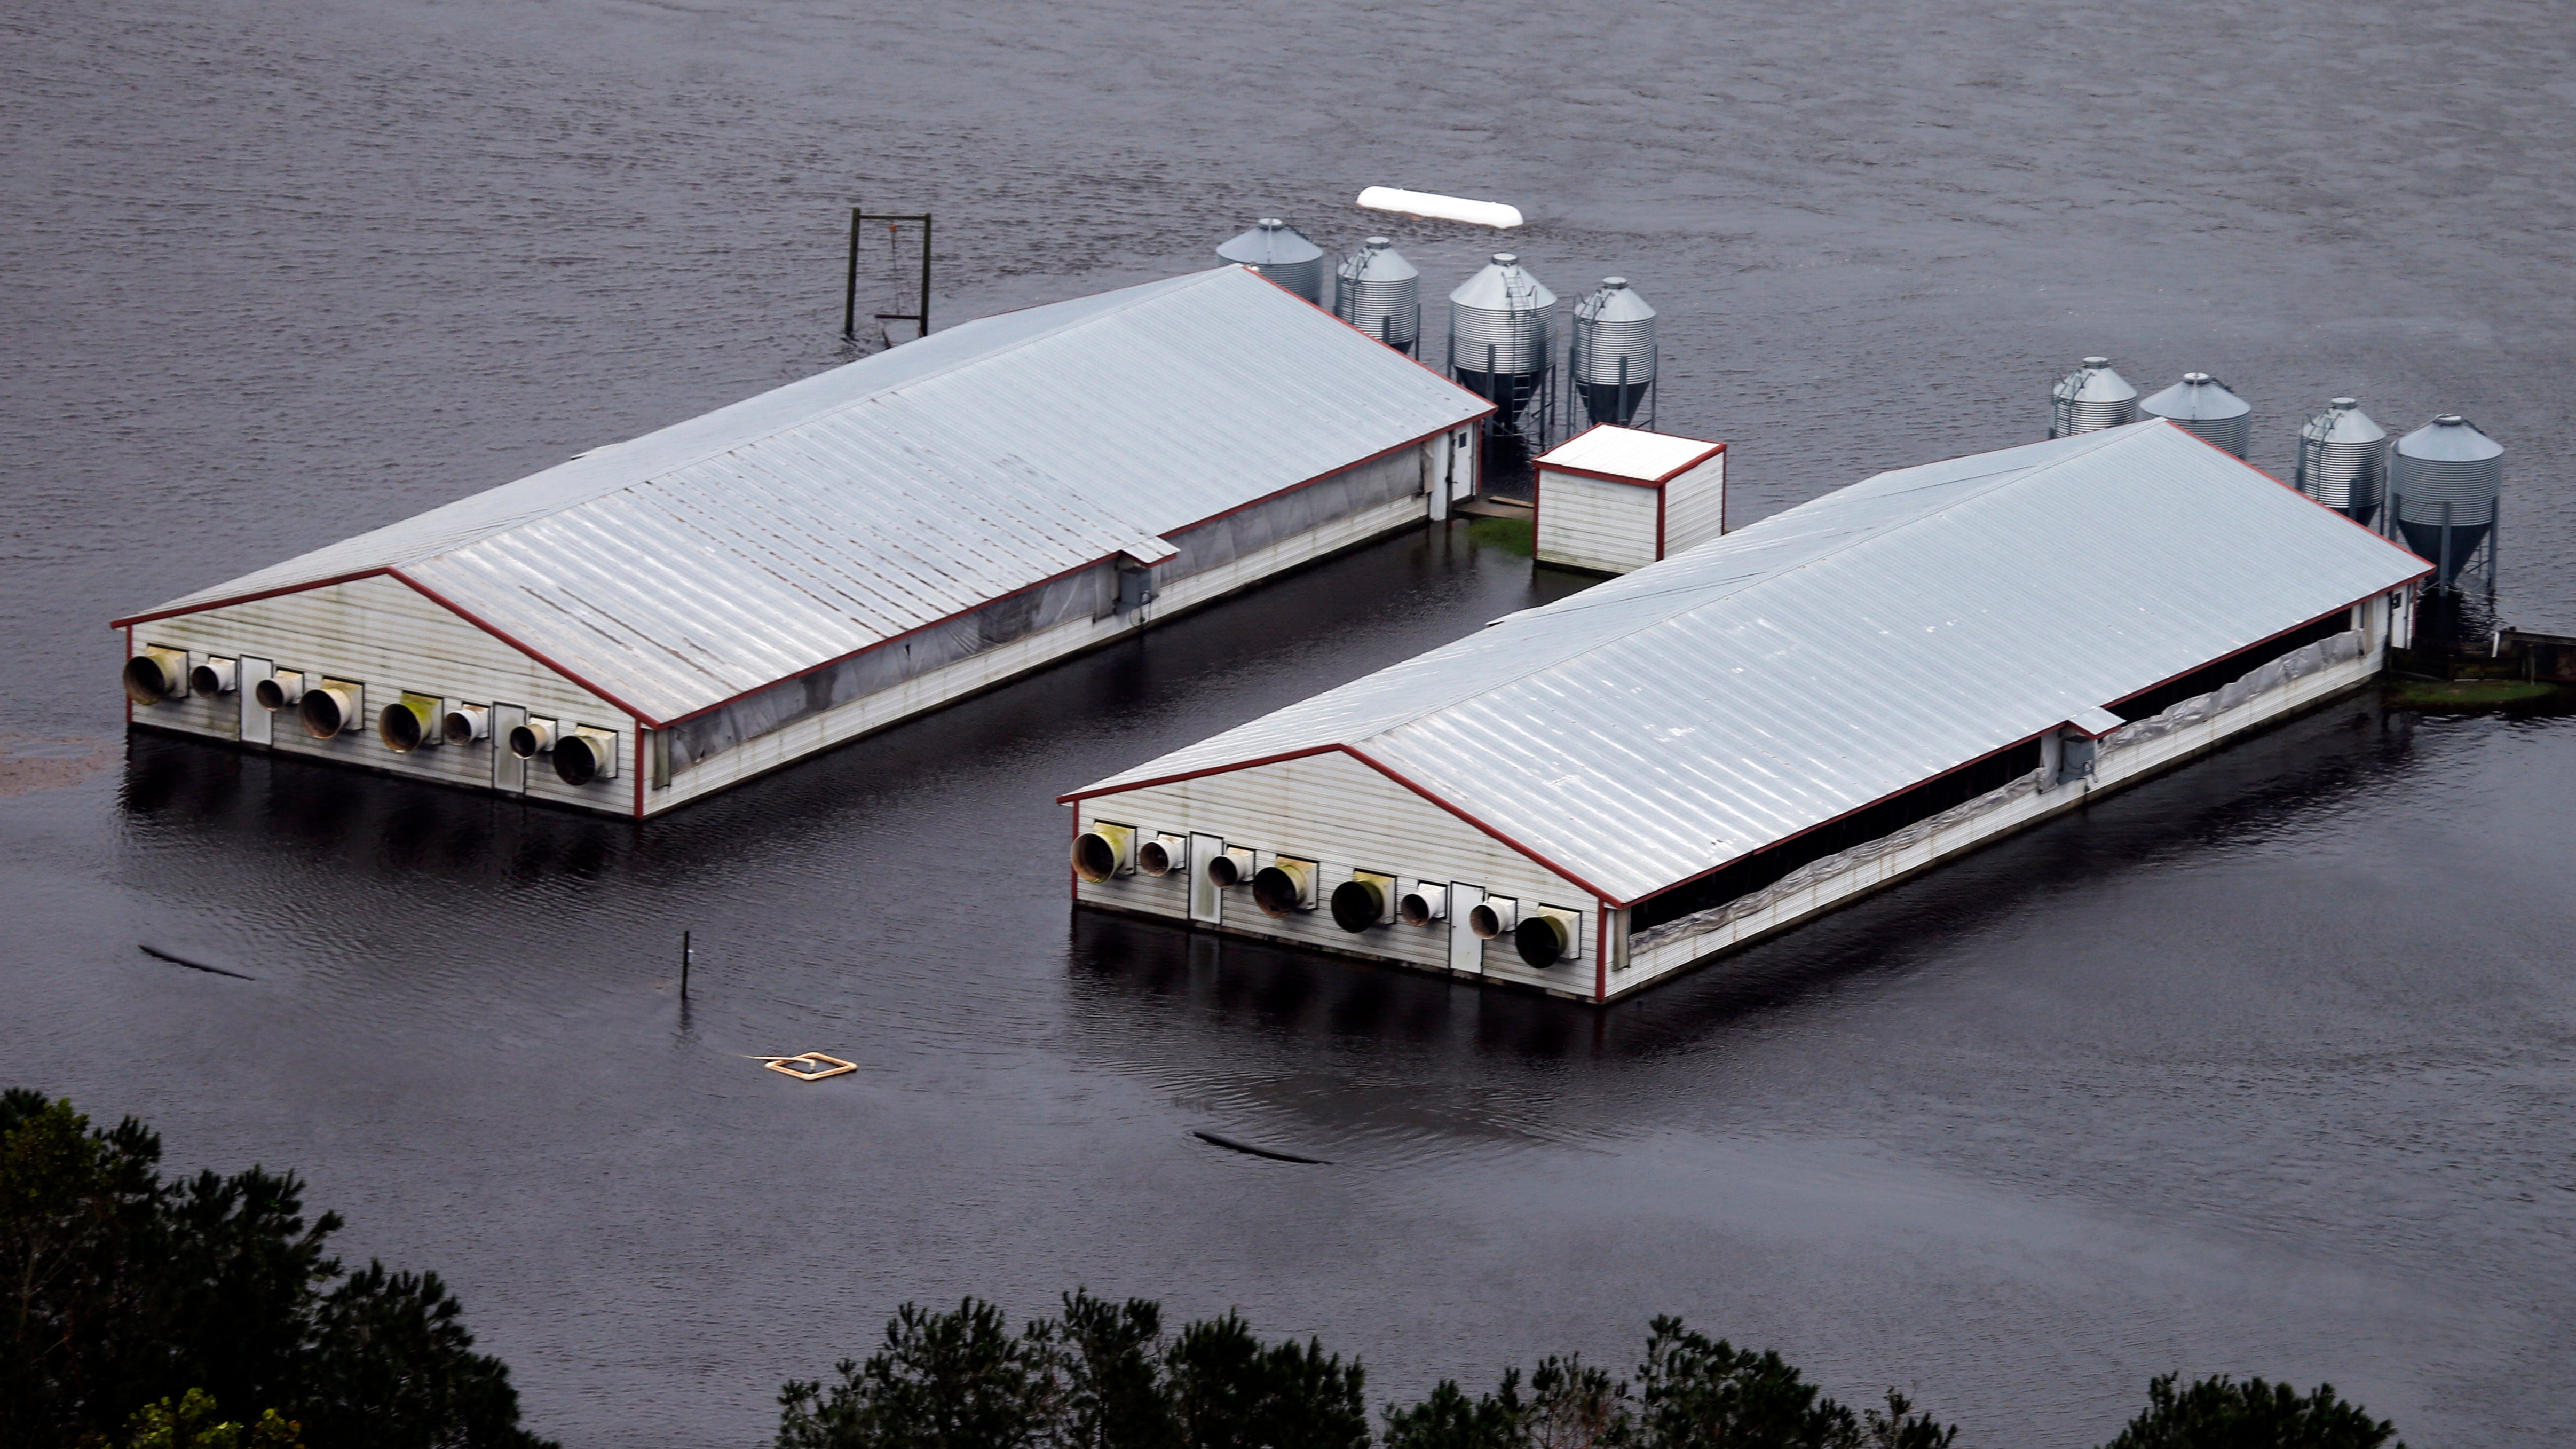 A hog farm is inundated with floodwaters from Hurricane Florence near Trenton, N.C., on Sept. 16, 2018.